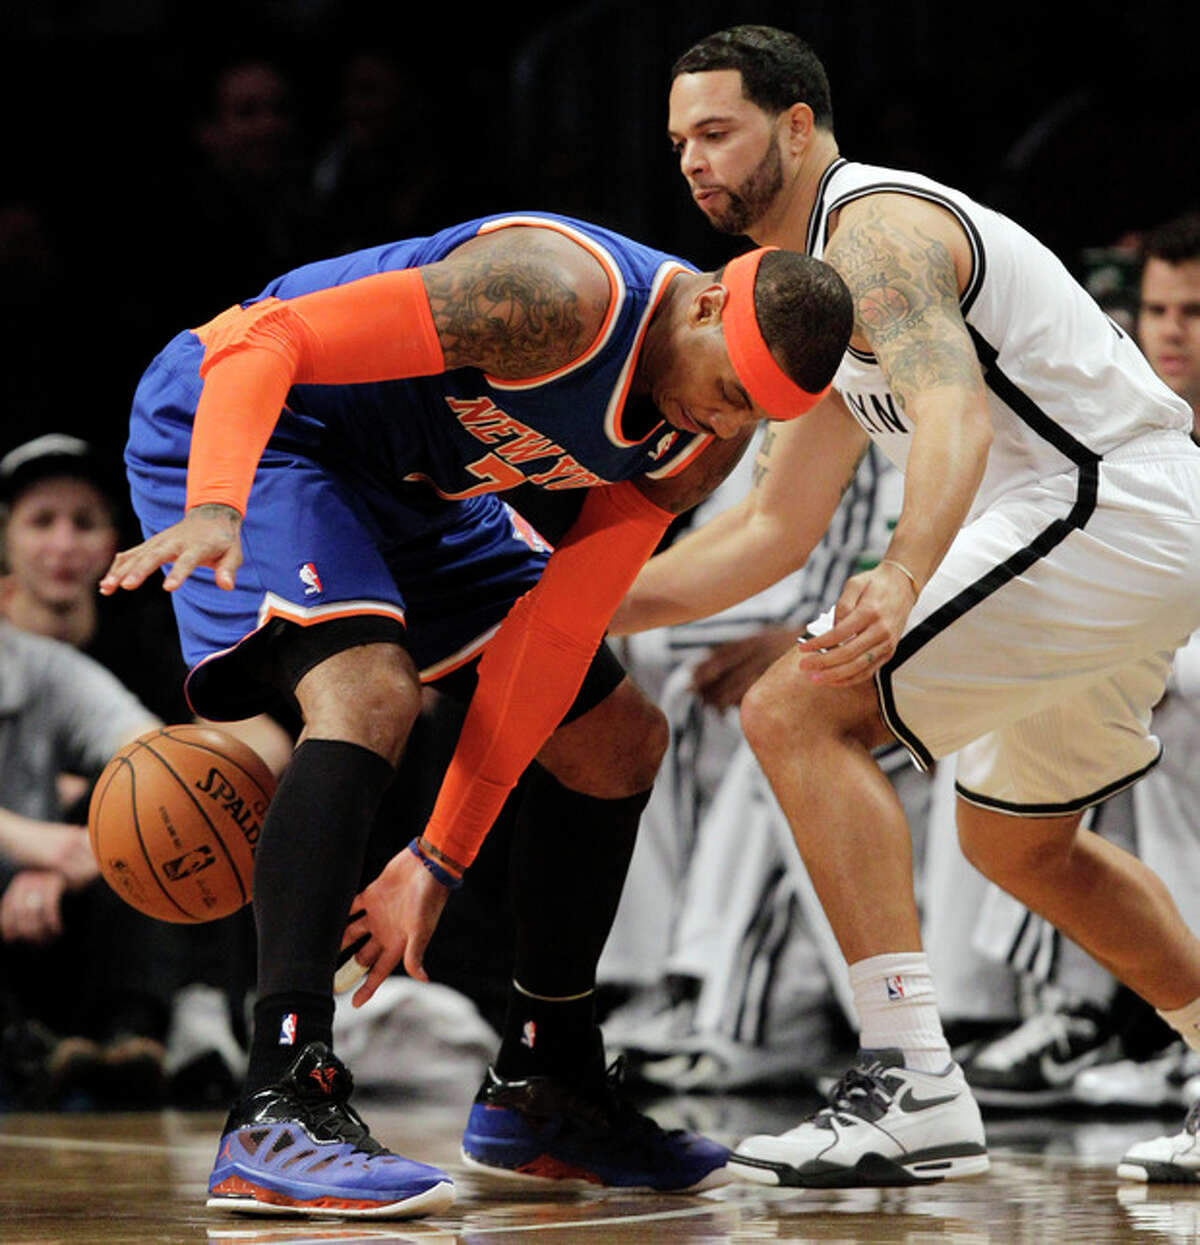 New York Knicks forward Carmelo Anthony (7) loses the ball as Brooklyn Nets guard Deron Williams (8) defends in the first half of their their NBA basketball game at Barclays Center, Tuesday, Dec. 11, 2012, in New York. (AP Photo/Kathy Willens)